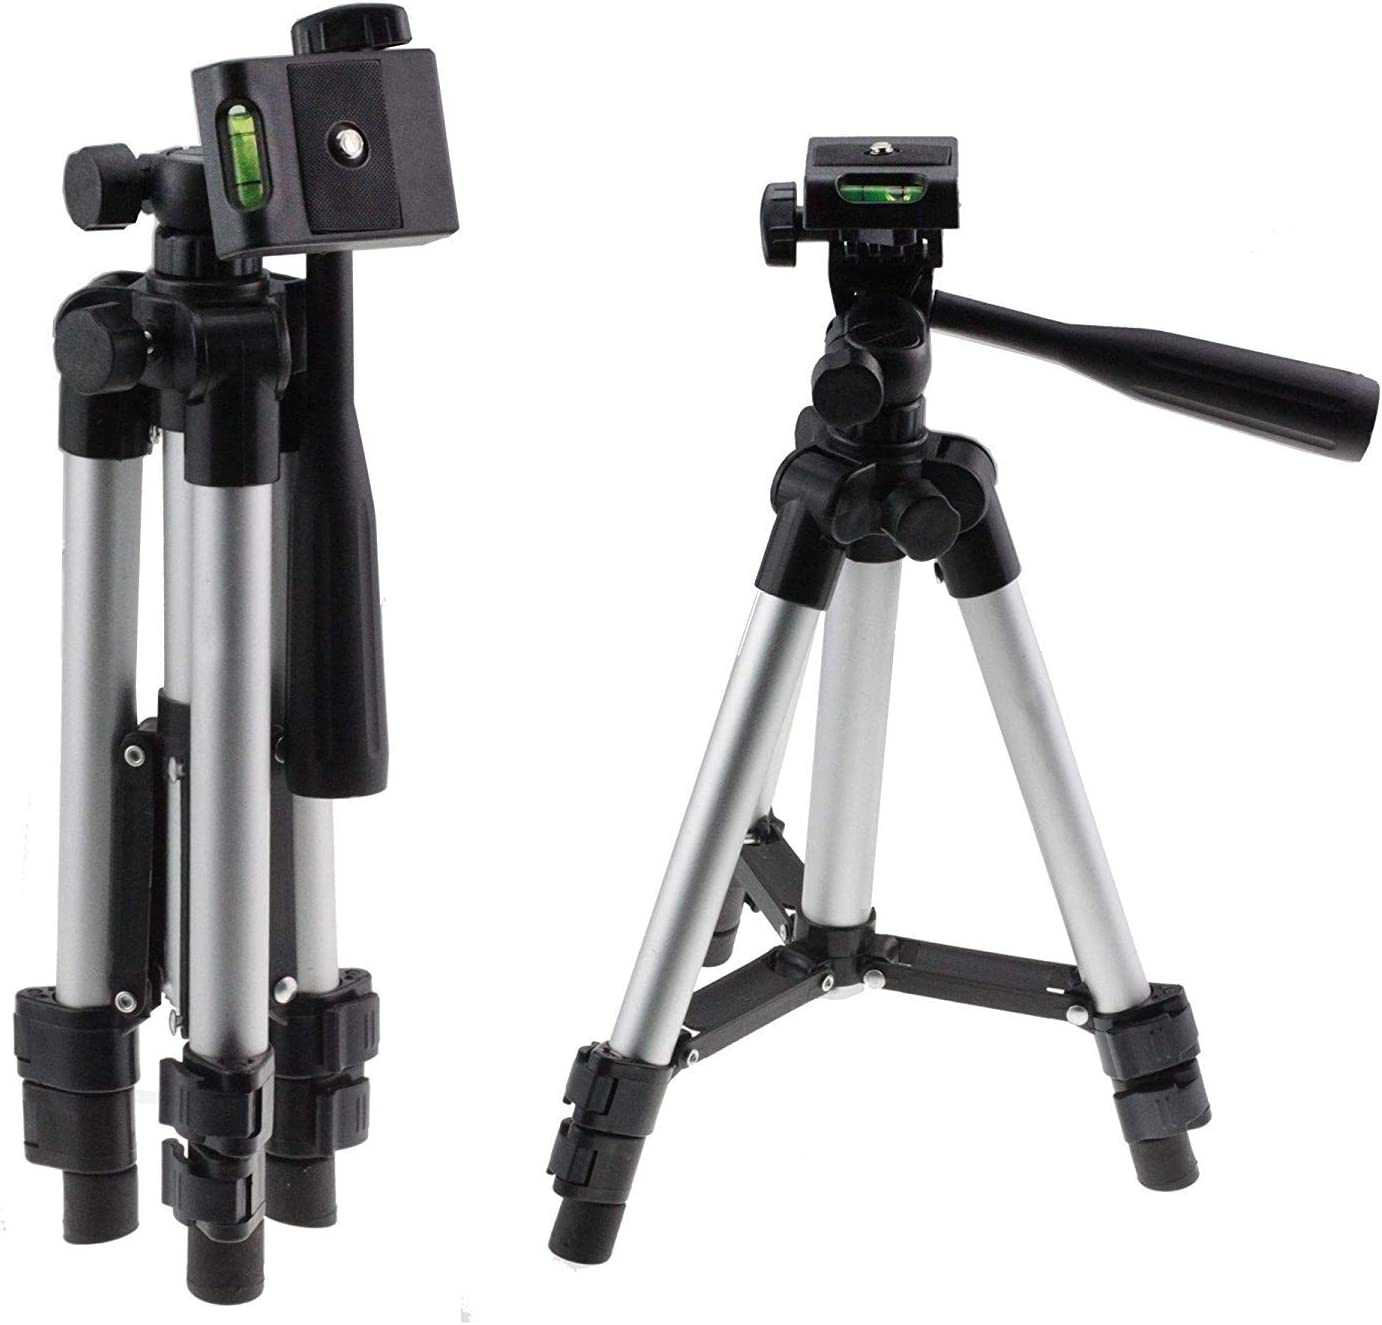 Navitech Lightweight Aluminium Tripod Compatible with The Kodak PIXPRO AZ527 Astro Zoom Bridge Camera